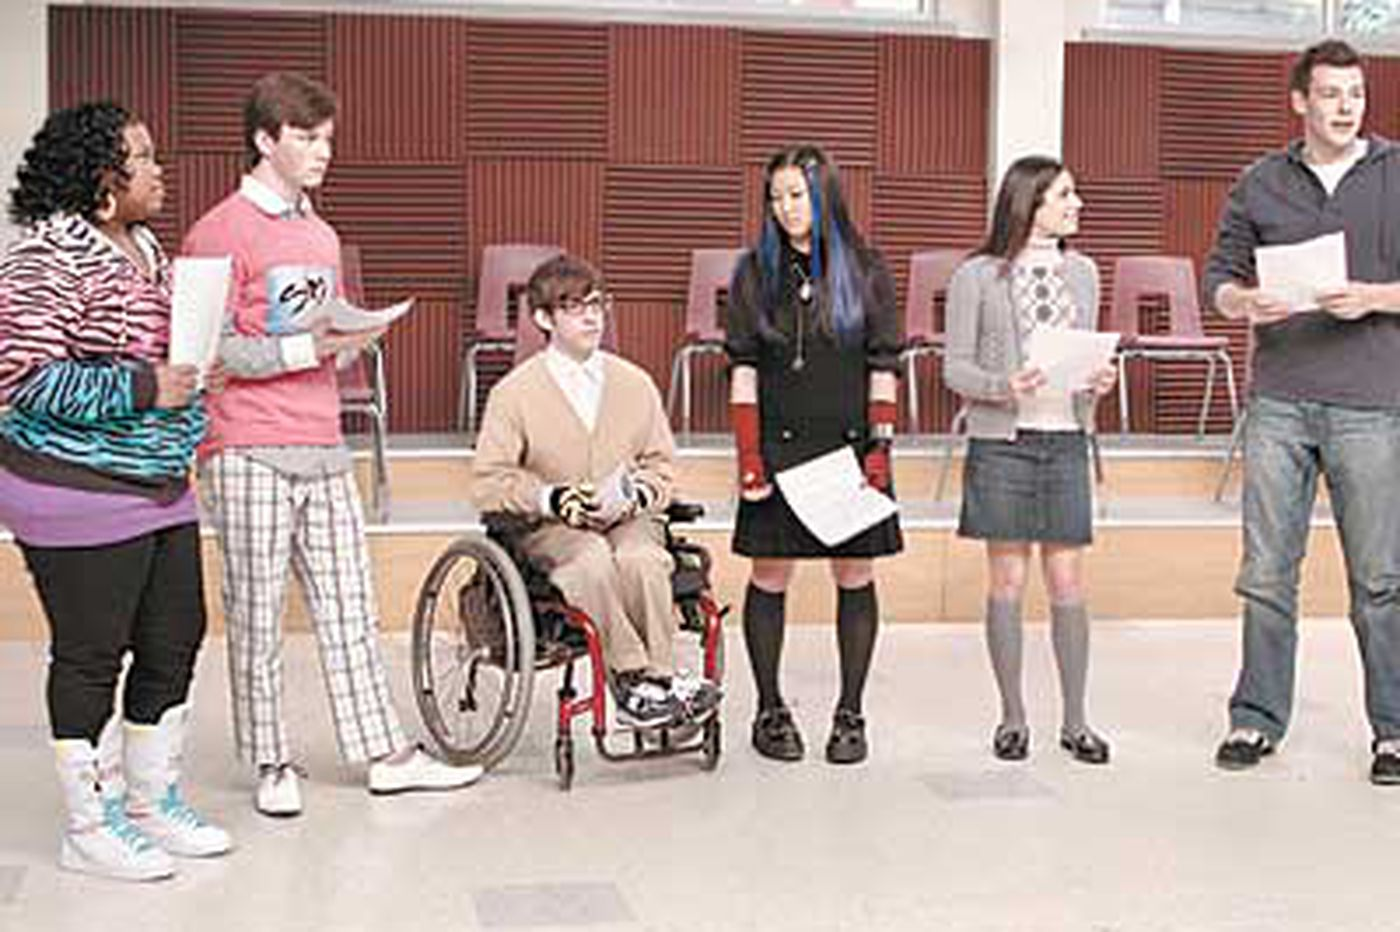 Jonathan Storm: 'Glee': A show to gladden a viewer